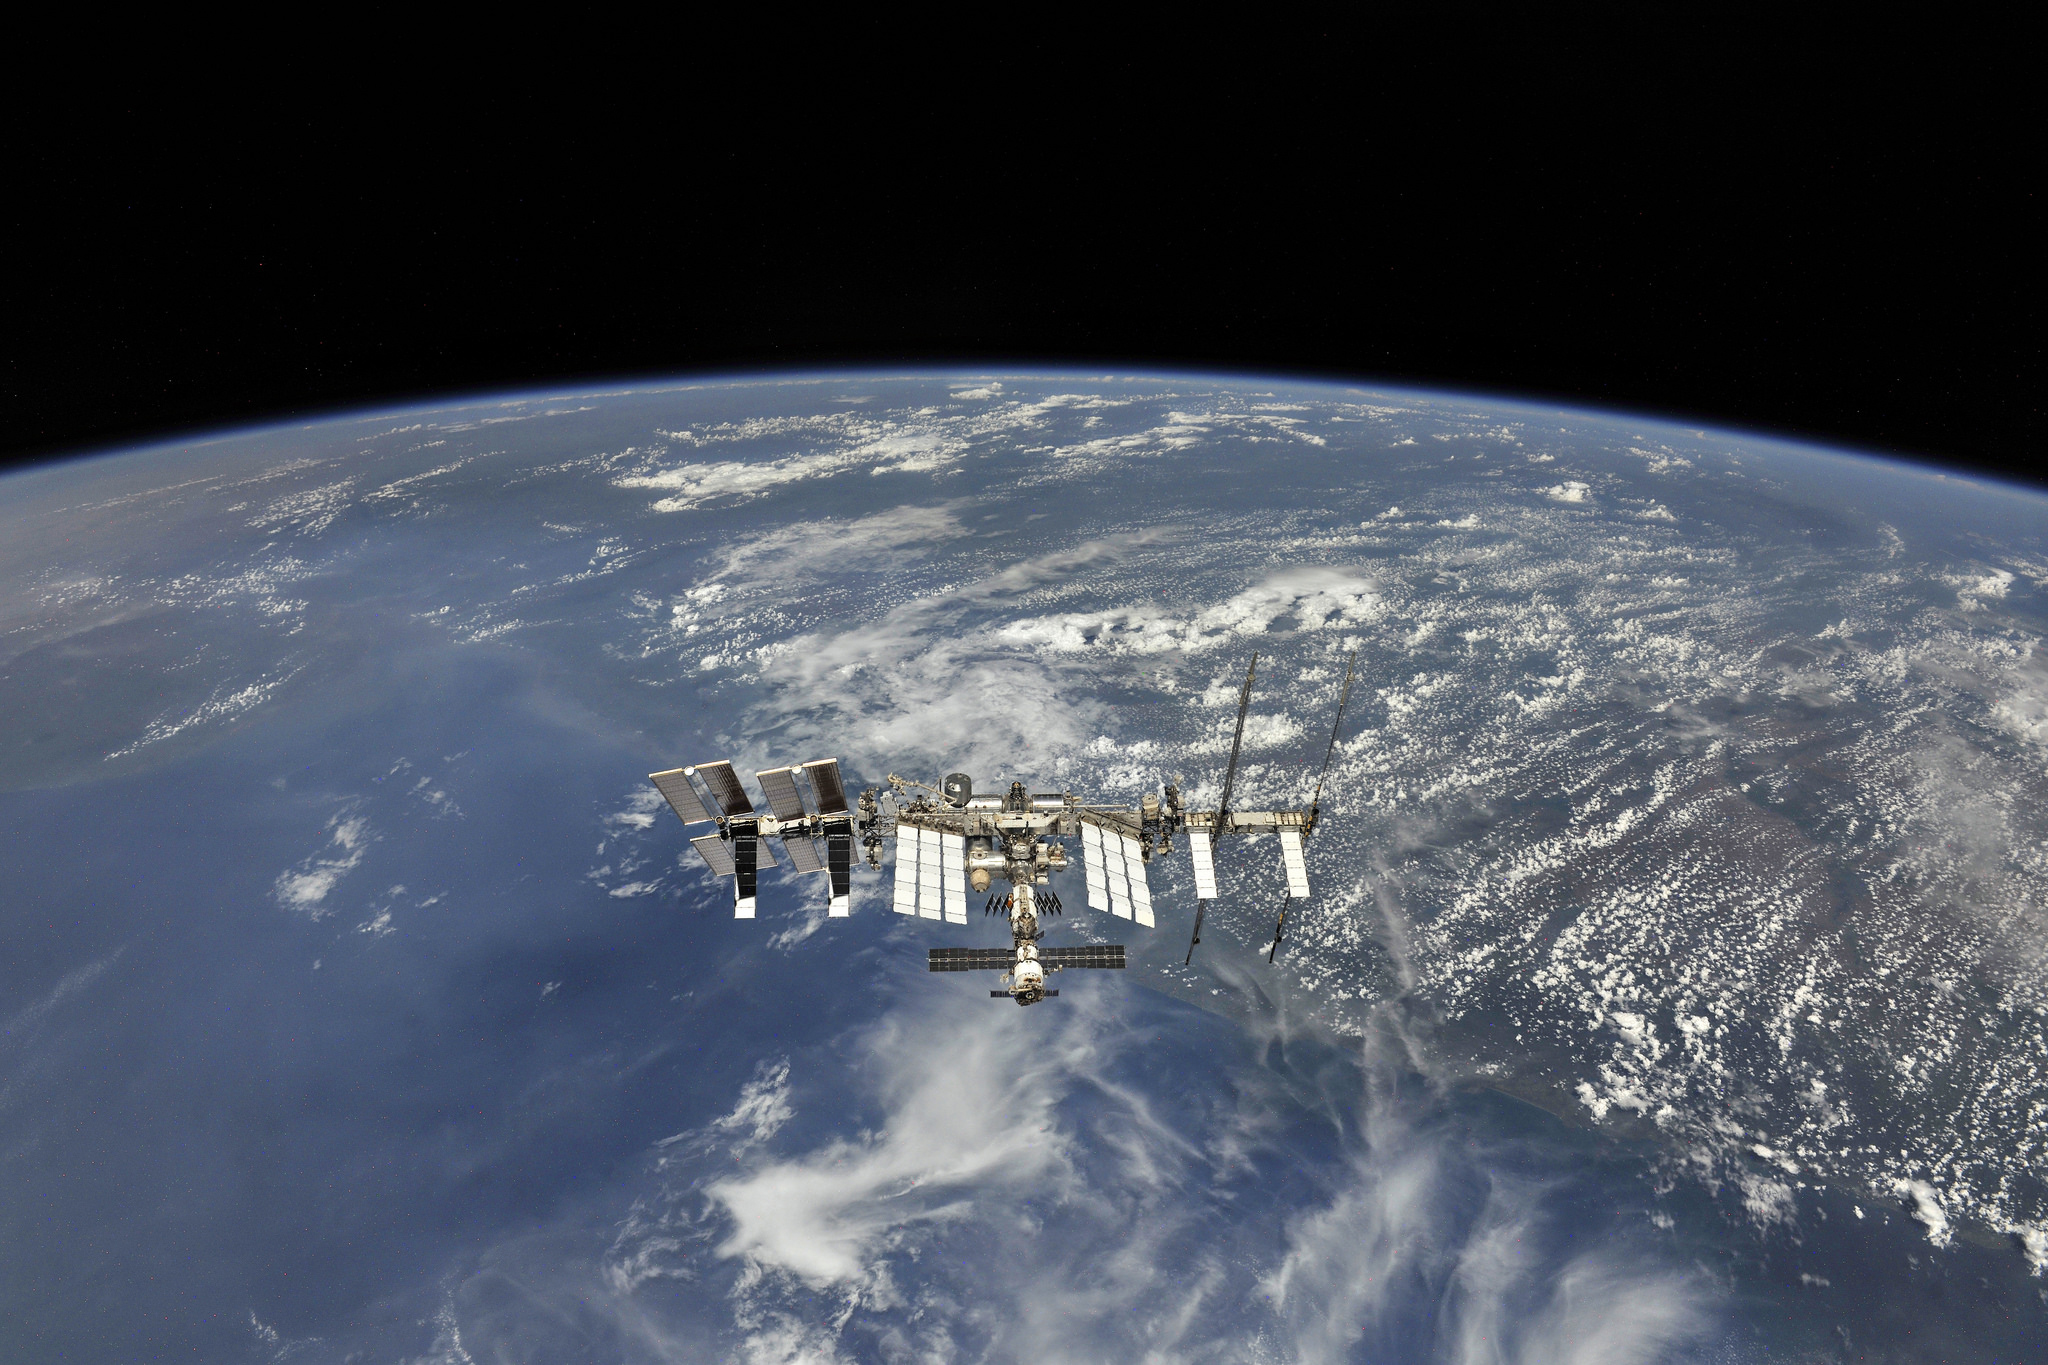 nouvelles photos de La Station Spatiale Internationale (ISS)